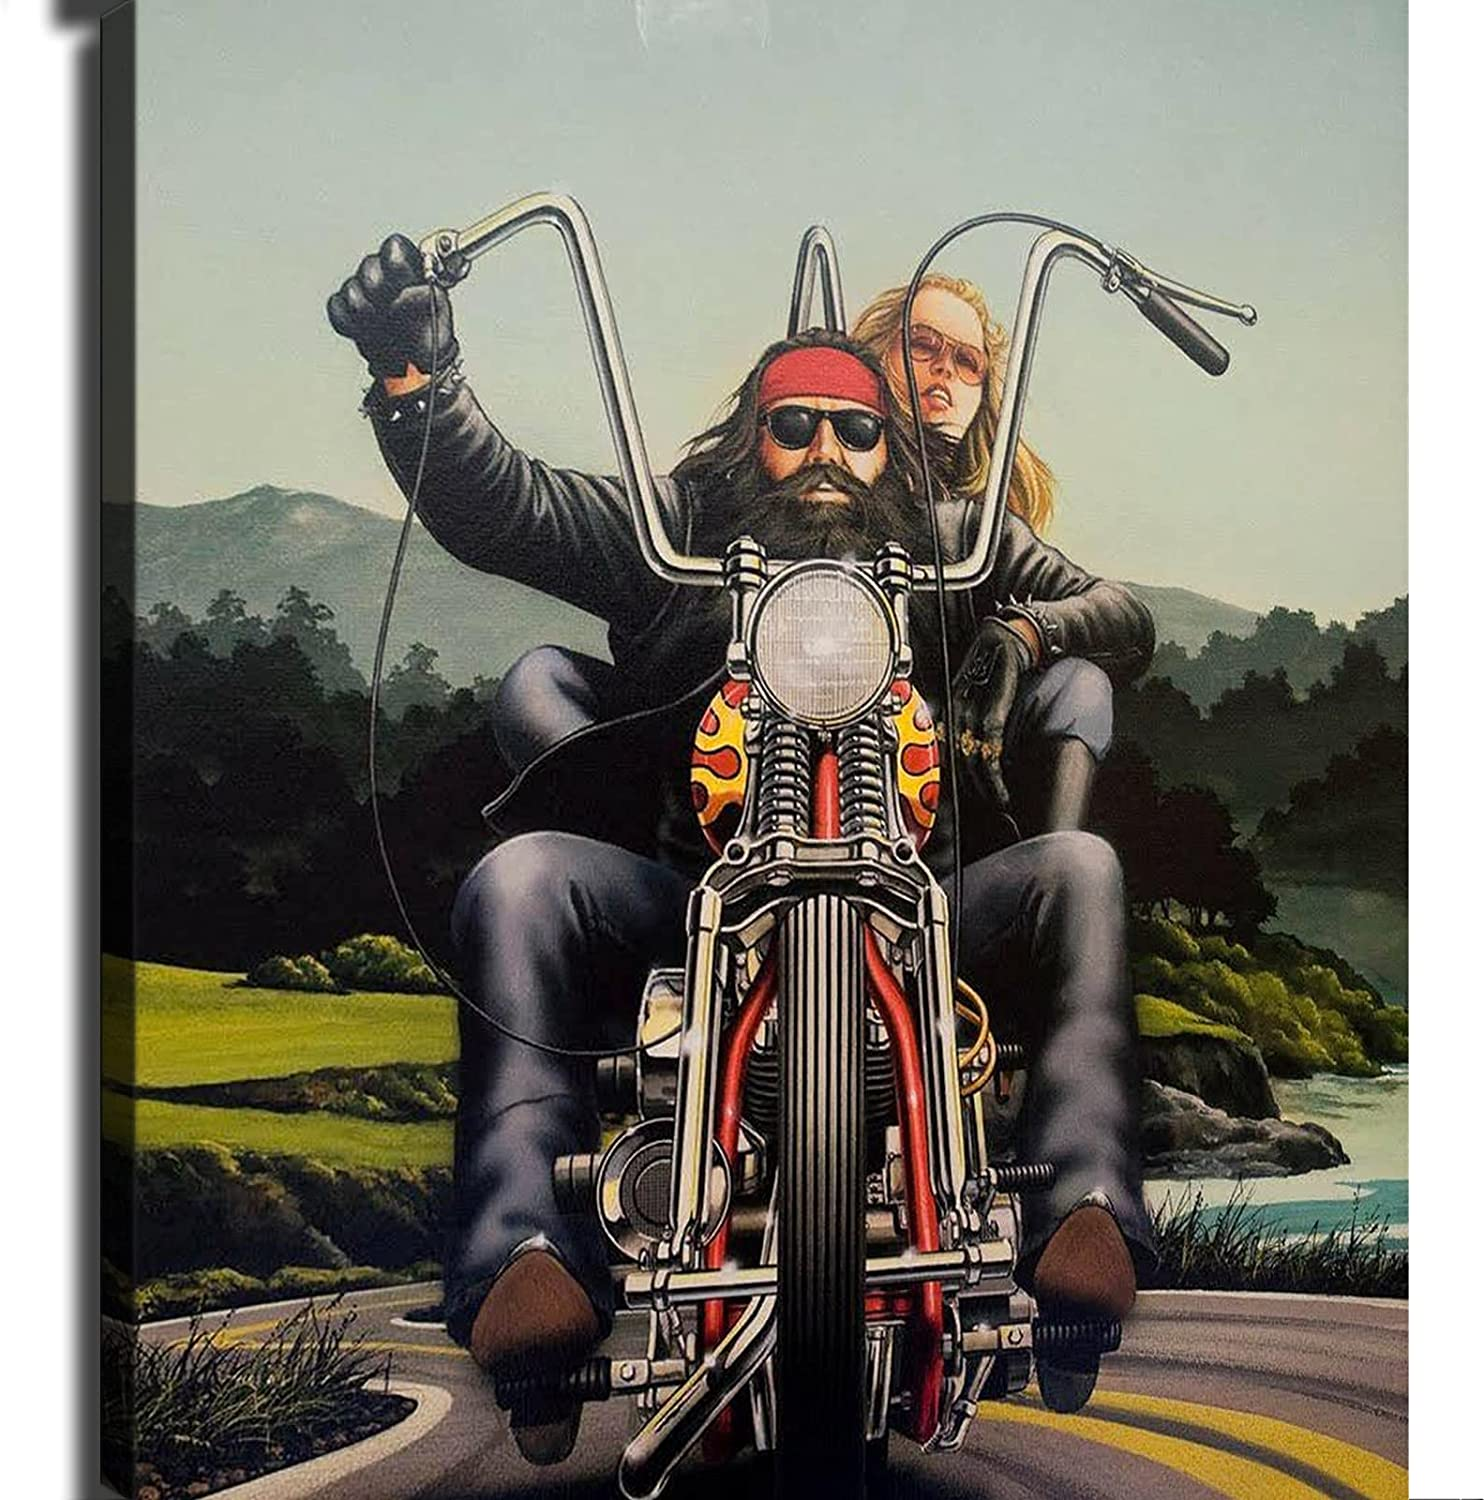 Easy rider david mann motorcycle Baltimore Mall Challenge the lowest price of Japan ☆ Poster Wall Canvas Print Mo Art